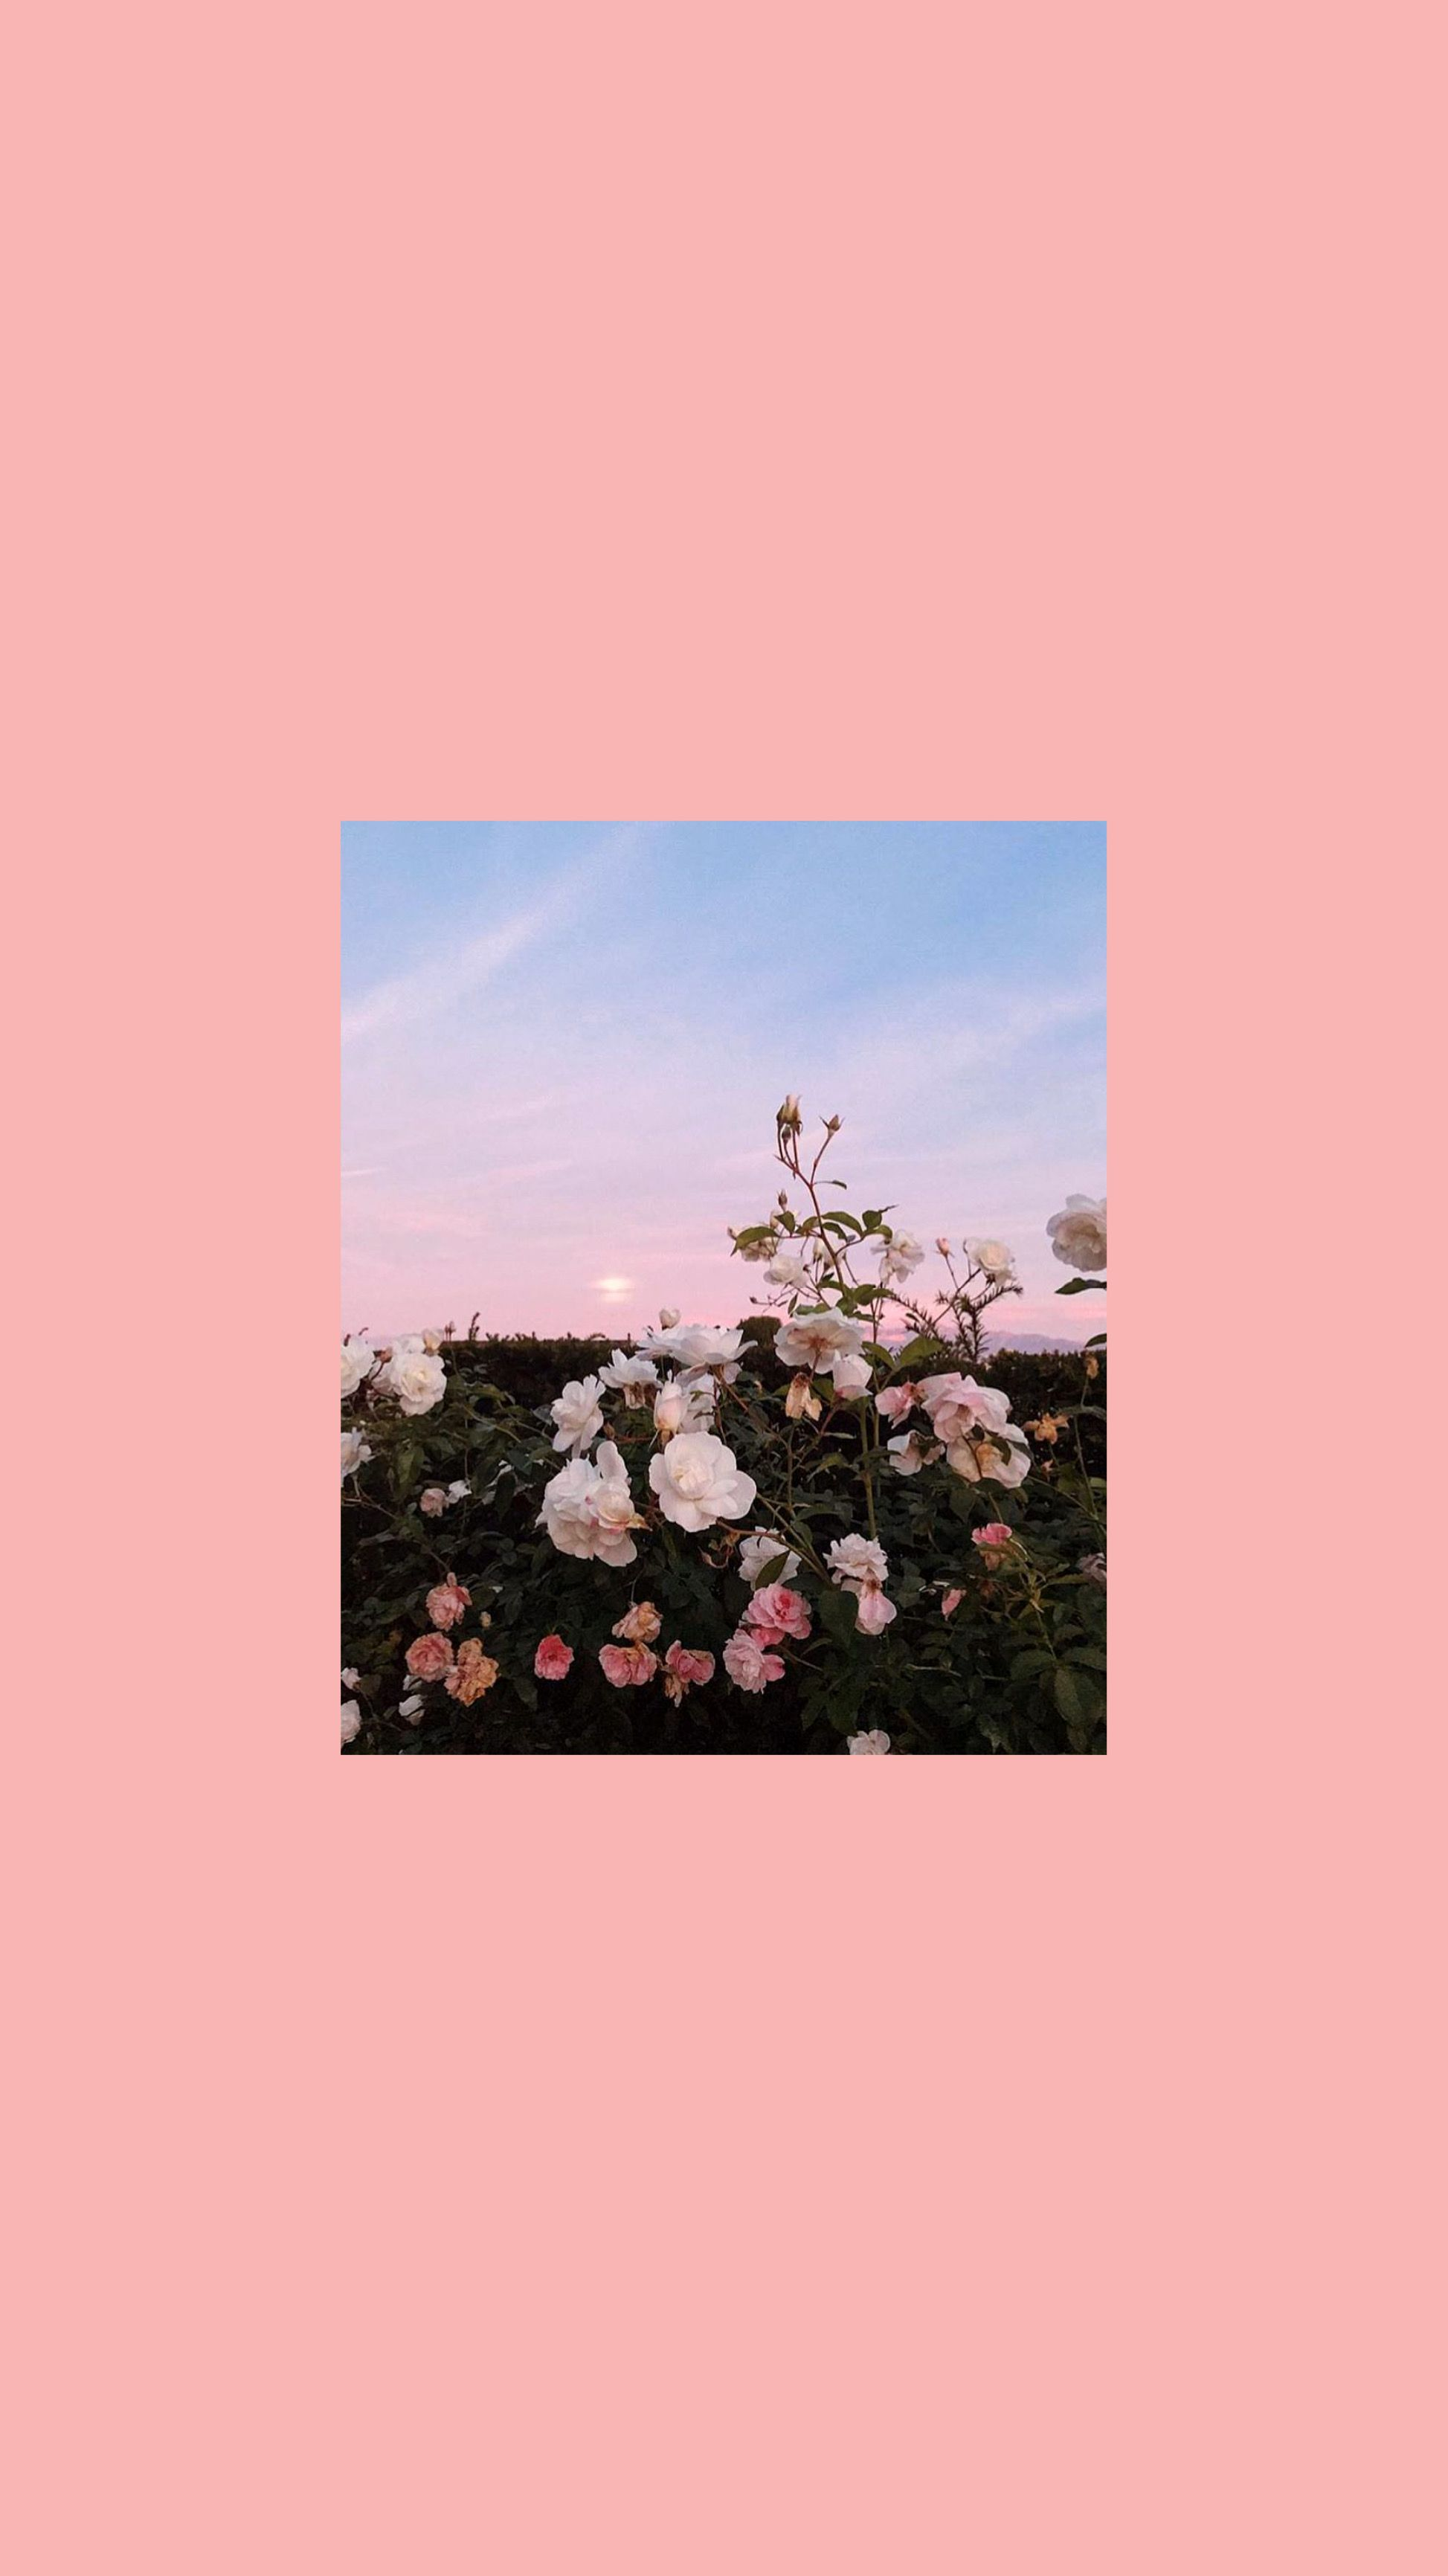 Wallpaper For Ipad Pro Flowers Photography Wallpaper Aesthetic Iphone Wallpaper Cute Wallpaper Backgrounds Aesthetic ipad pro wallpaper tumblr